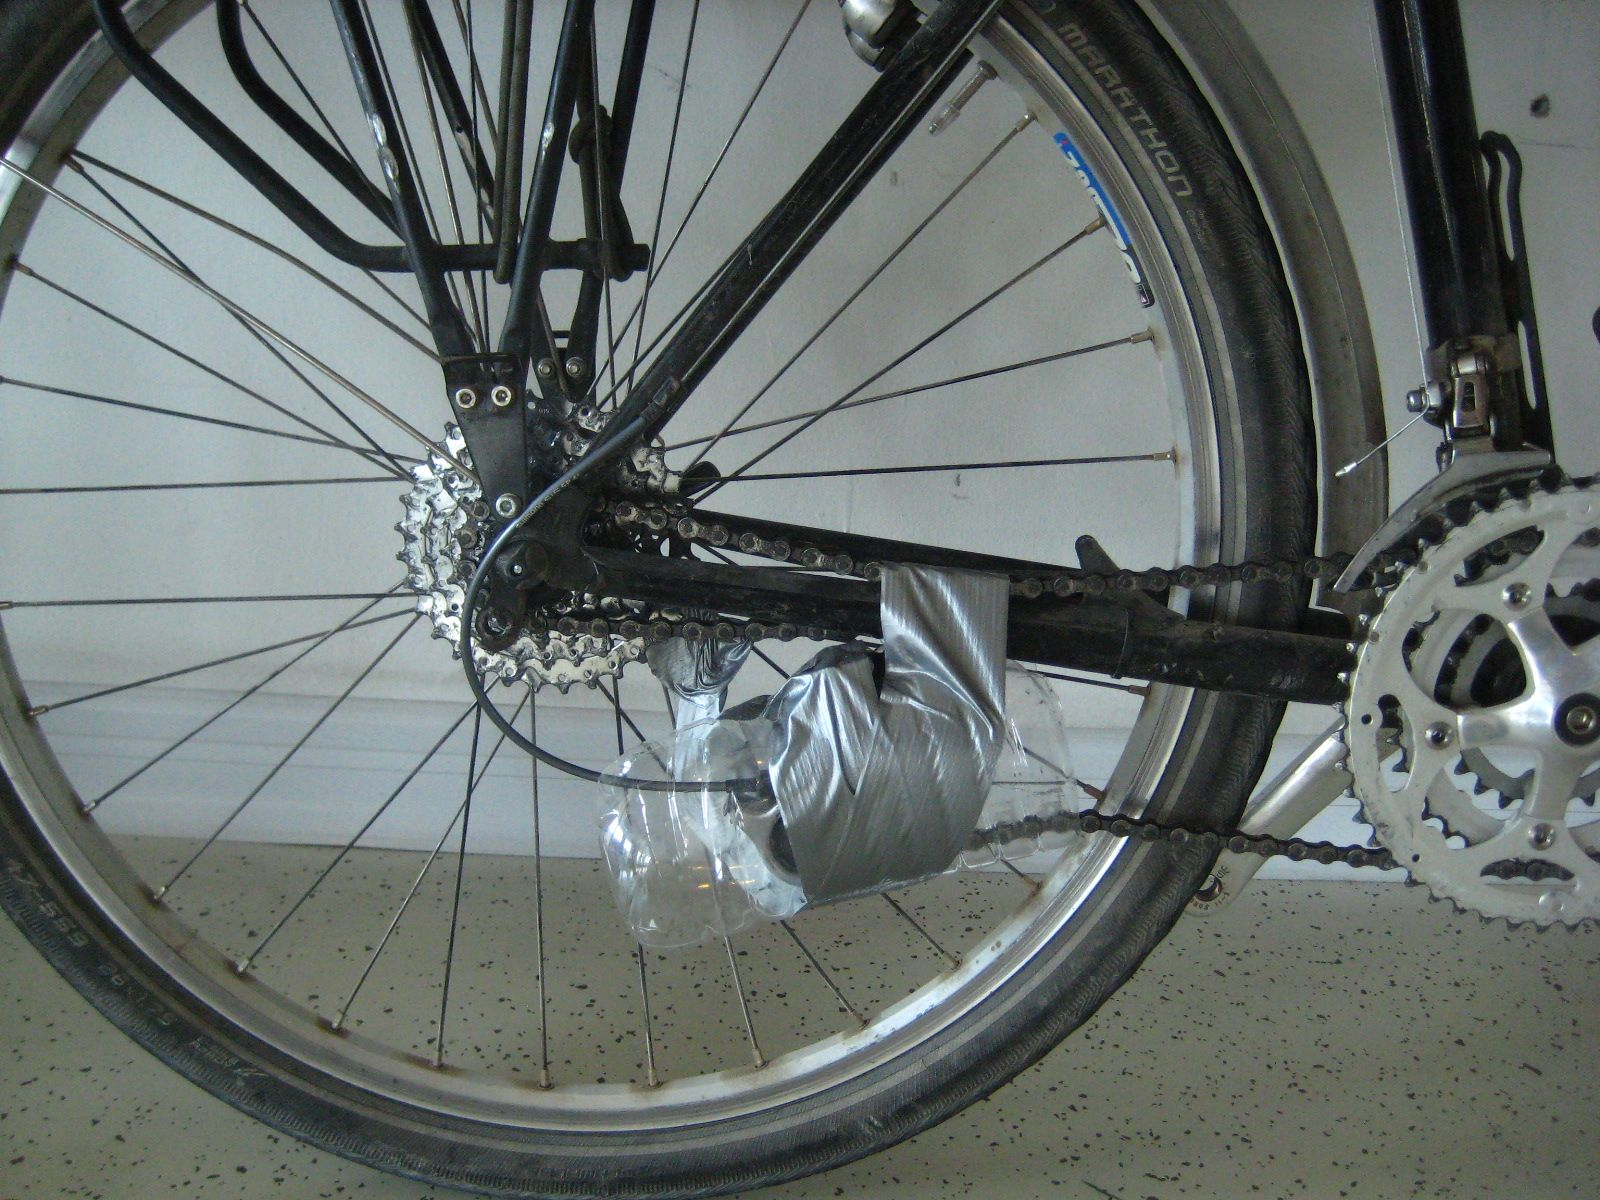 remove the rear derailleur; bike touring; cycling; air travel; flying with a bike